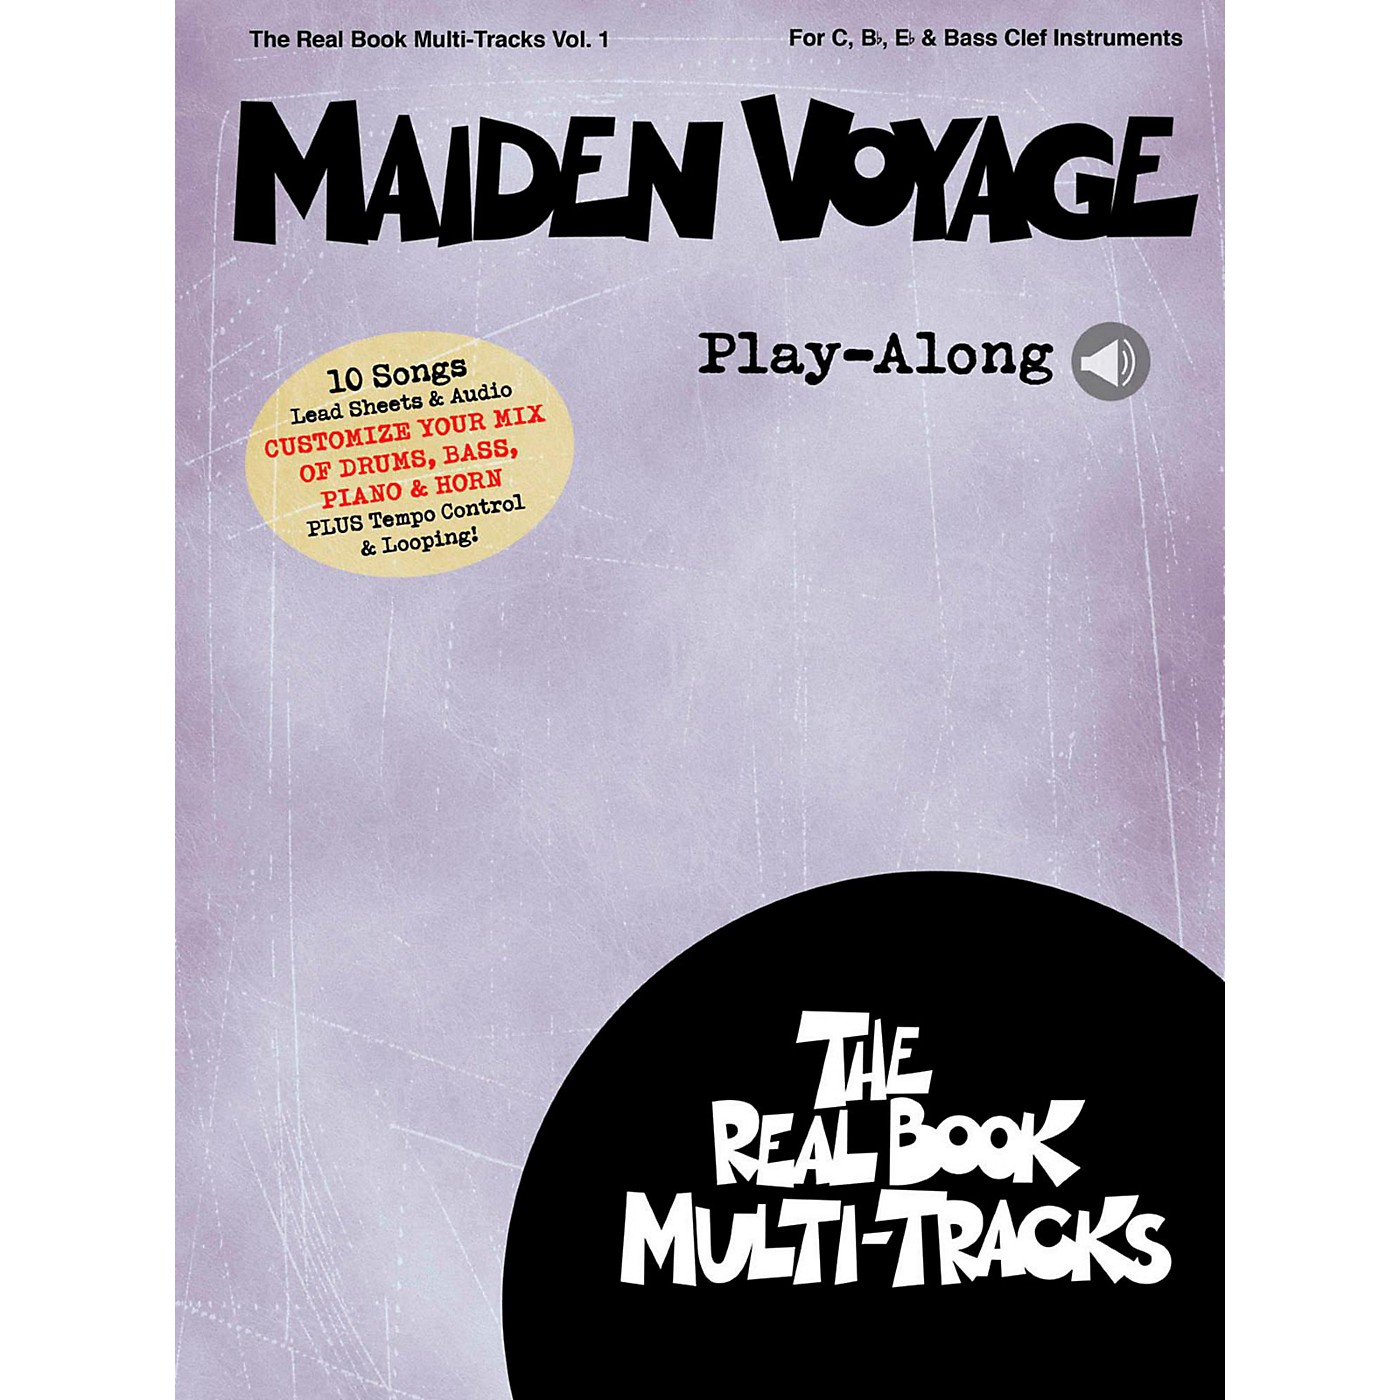 Hal Leonard Maiden Voyage Play-Along - Real Book Multi-Tracks Vol. 1 thumbnail